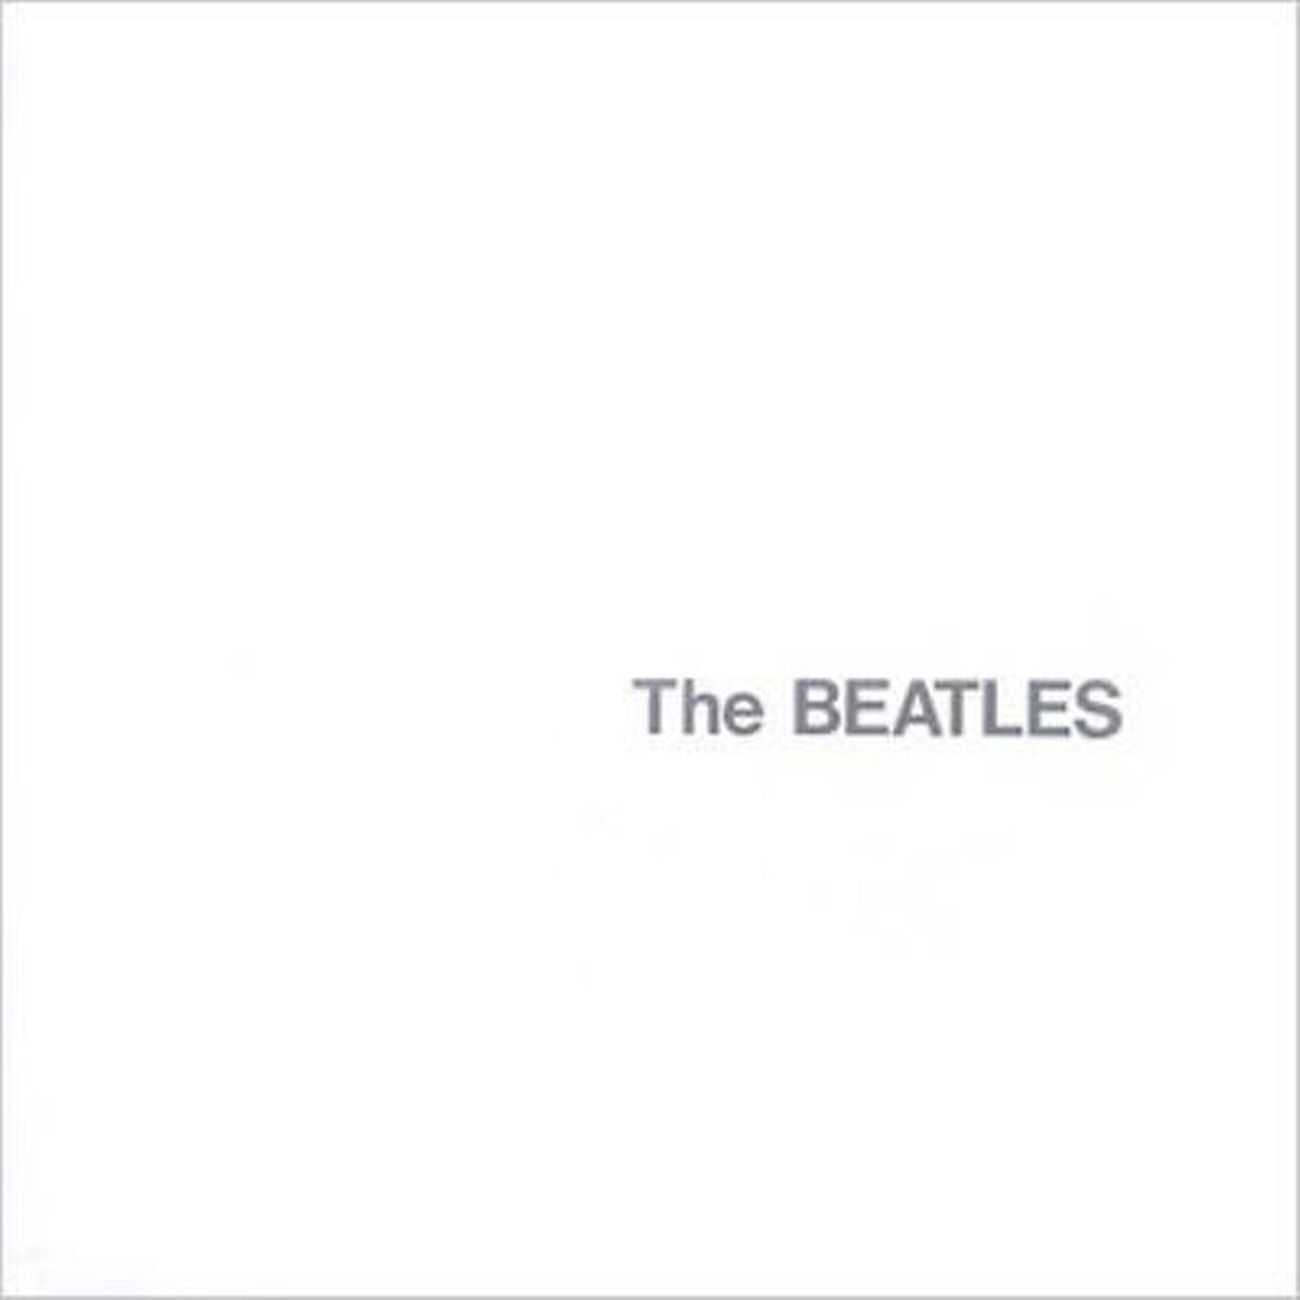 Il White Album dei Beatles